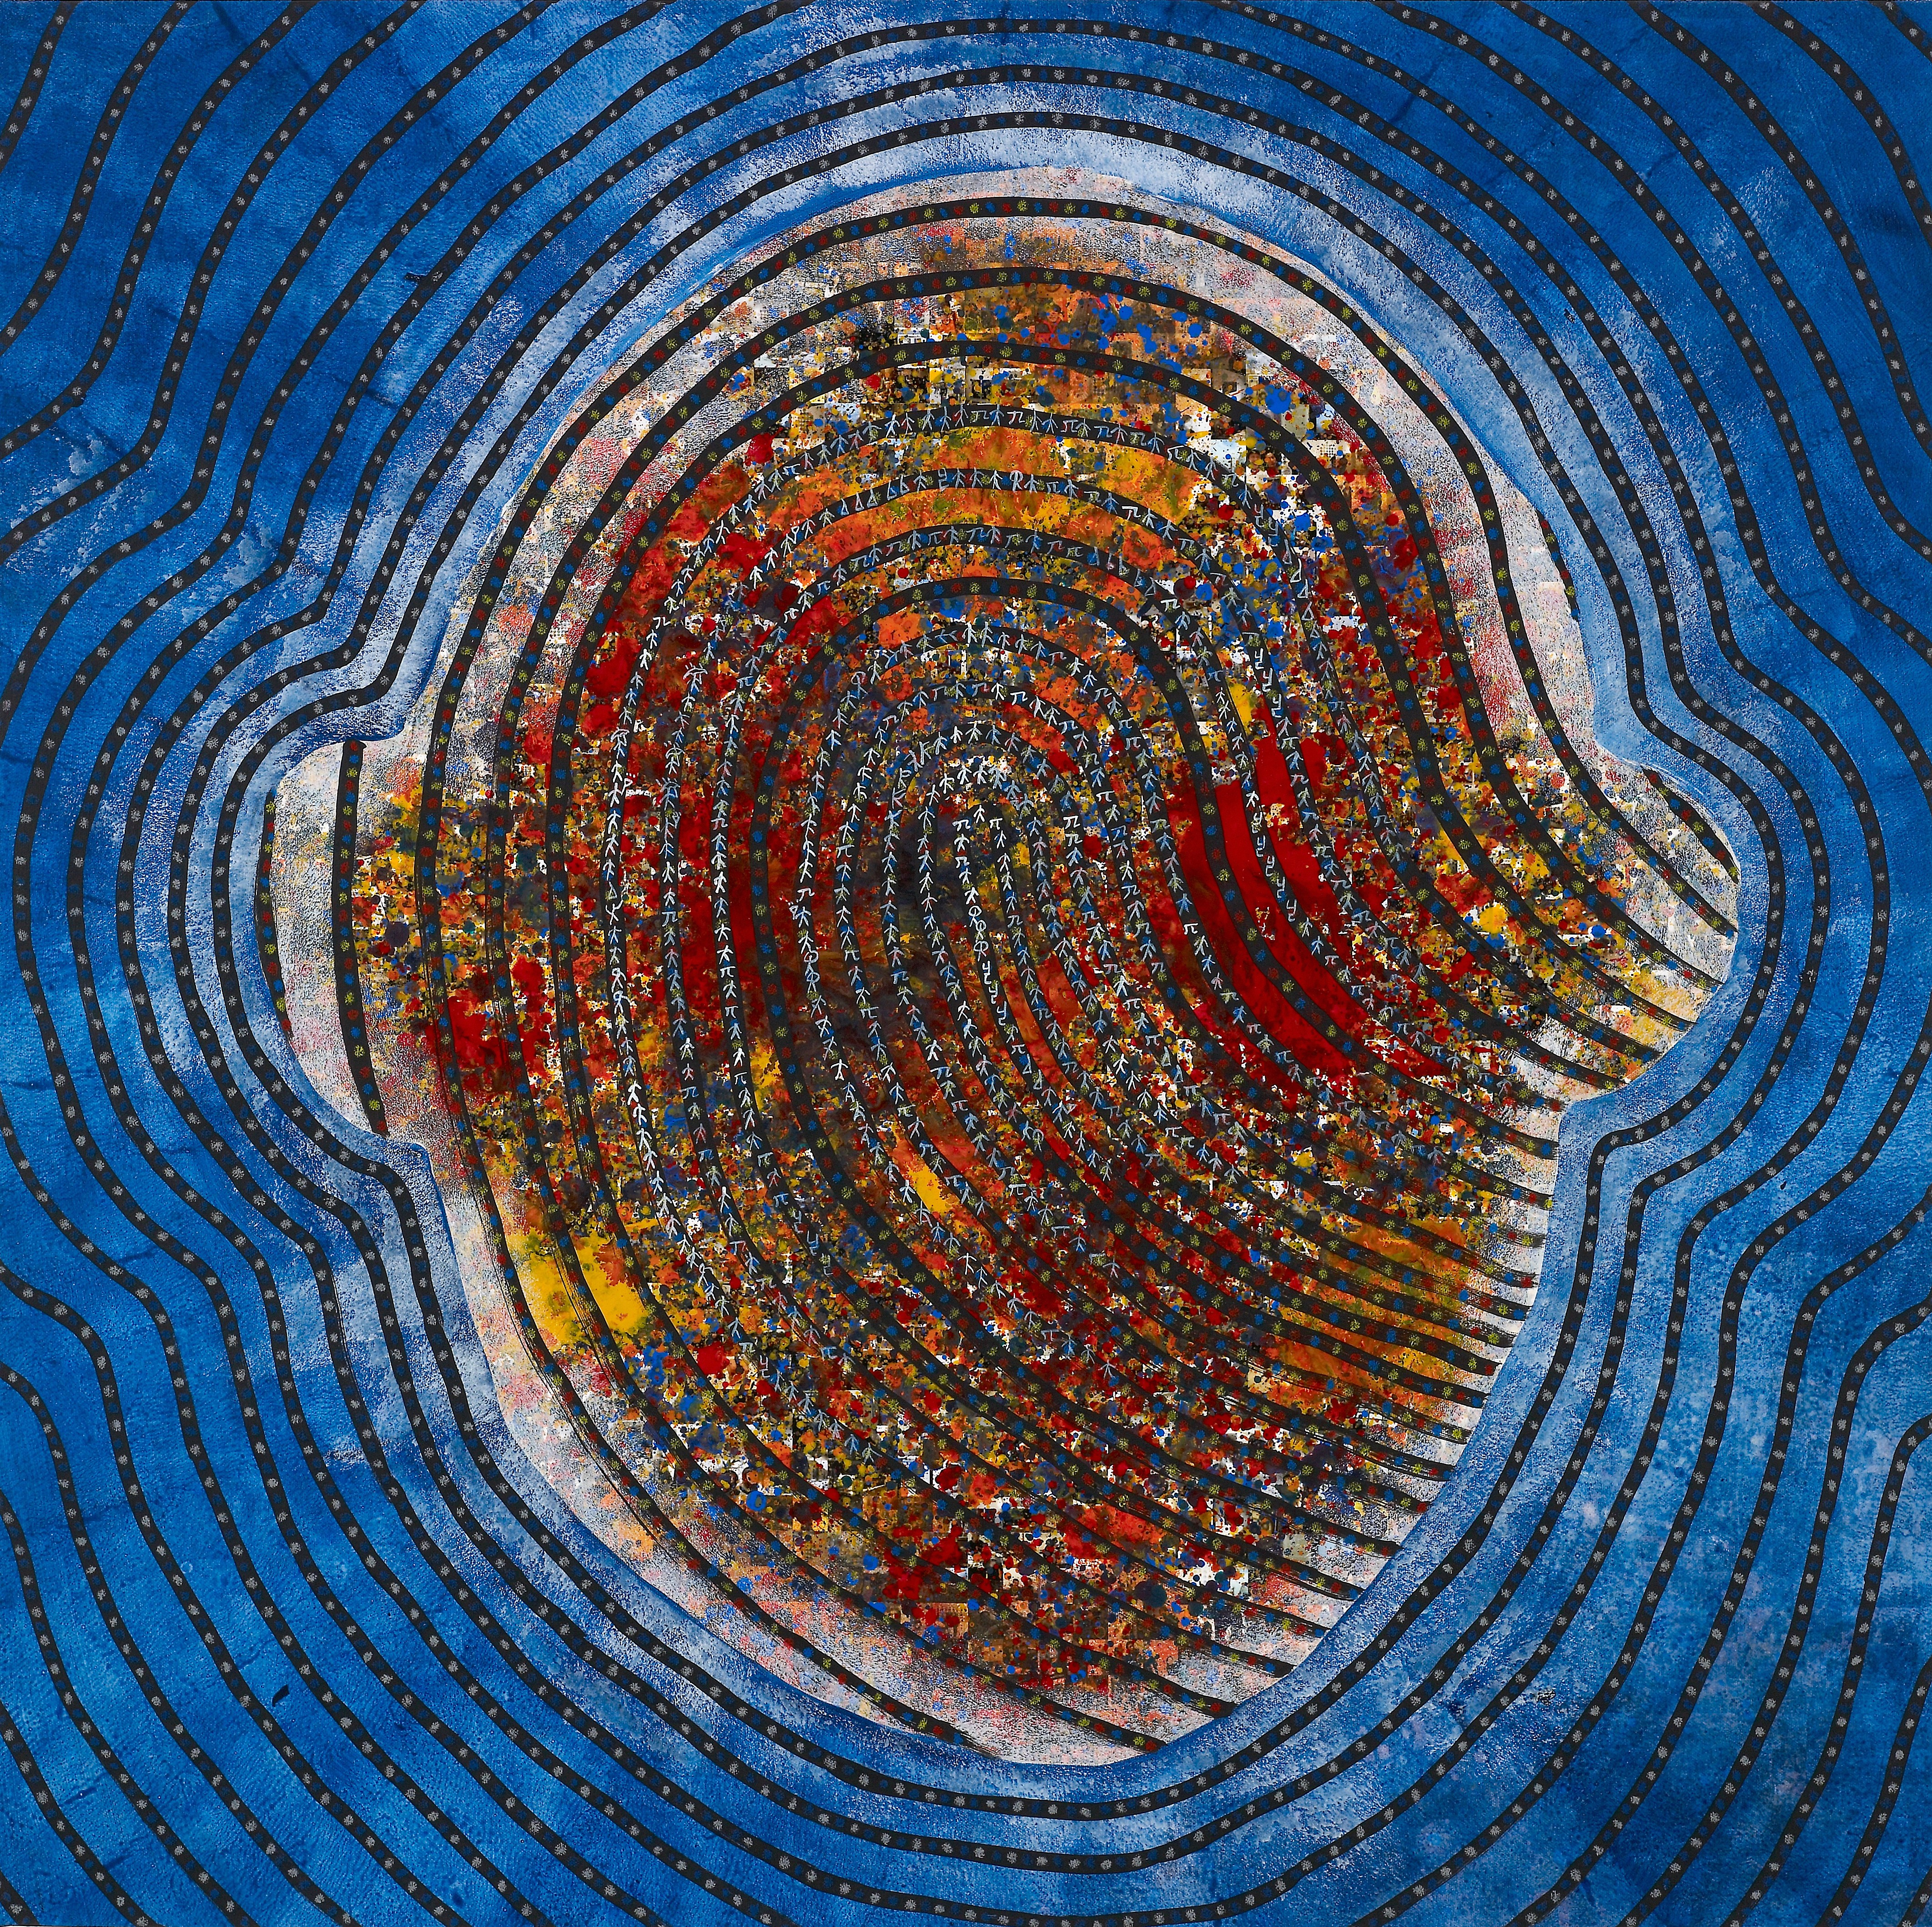 see the finger print see the perfection6 97.5 x 97.5cm Acrylic on digital printing 2016